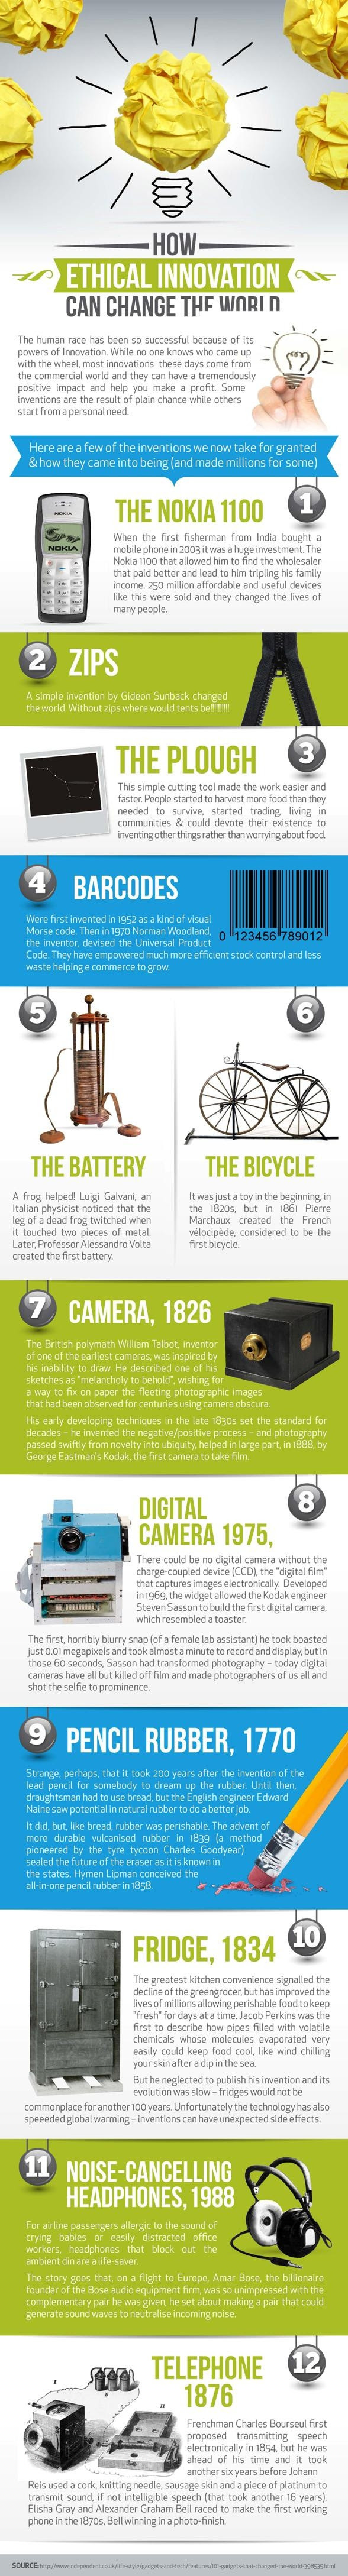 Infographic by: How Ethical Innovation Can Change The World #infographic